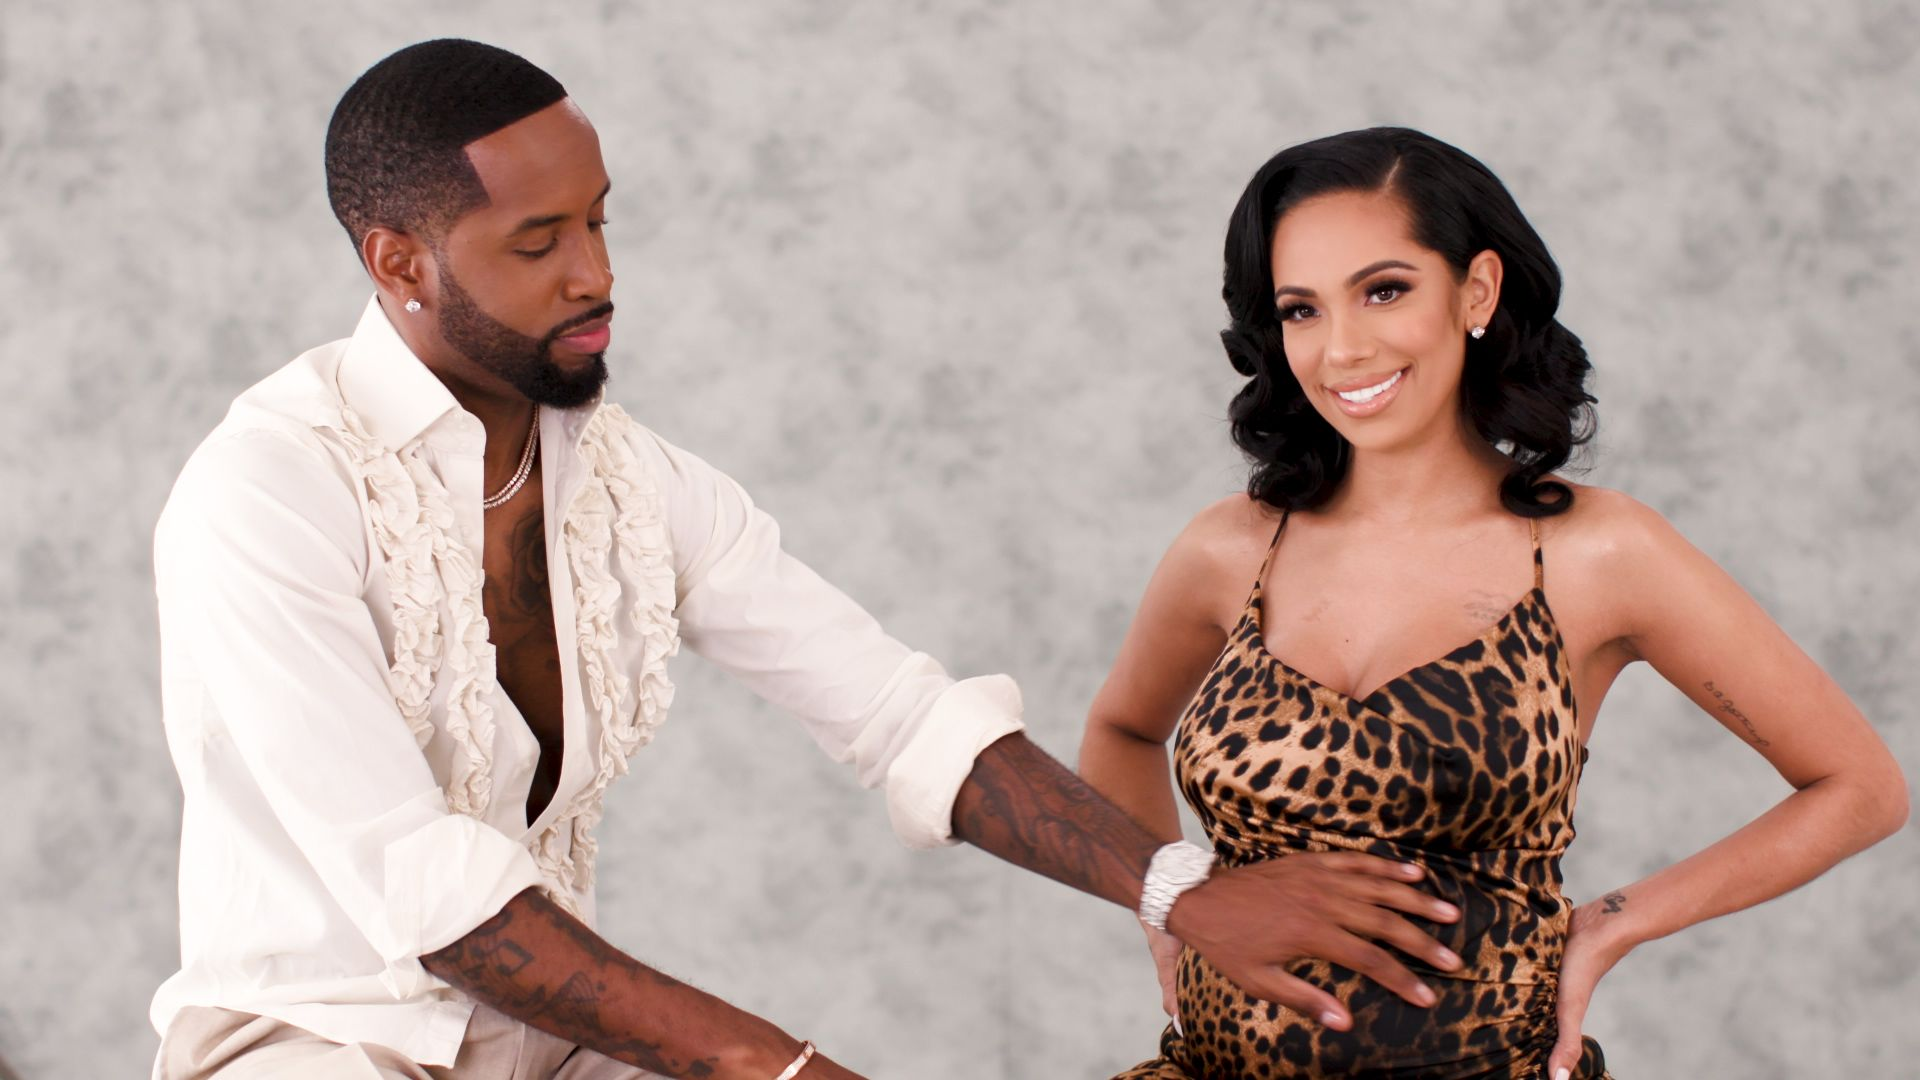 Erica Mena And Safaree's Gang Was Reportedly Involved In A Physical Altercation